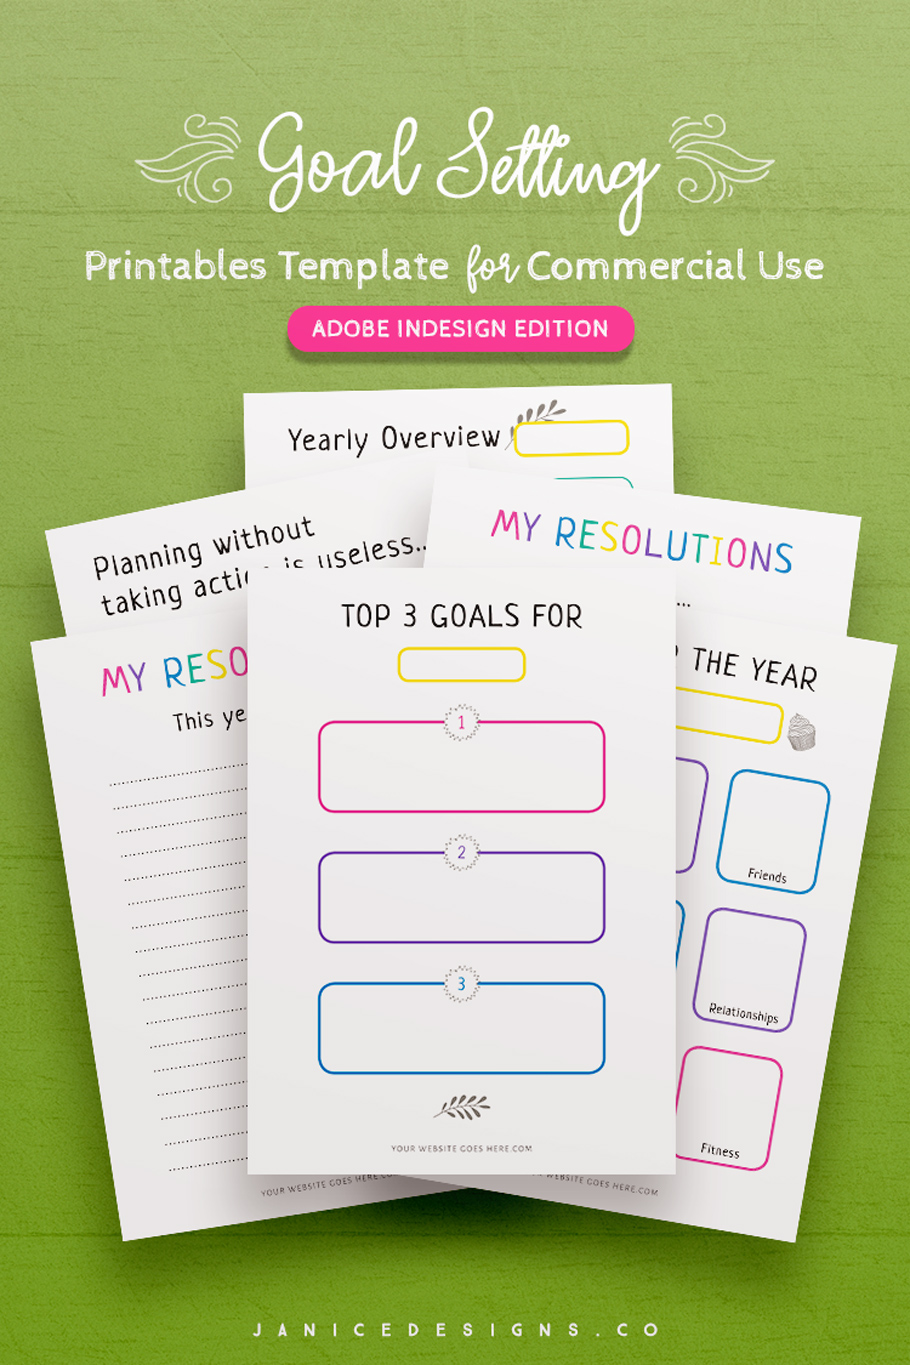 7-in-1 Bundle InDesign Templates for Commercial Use example image 5